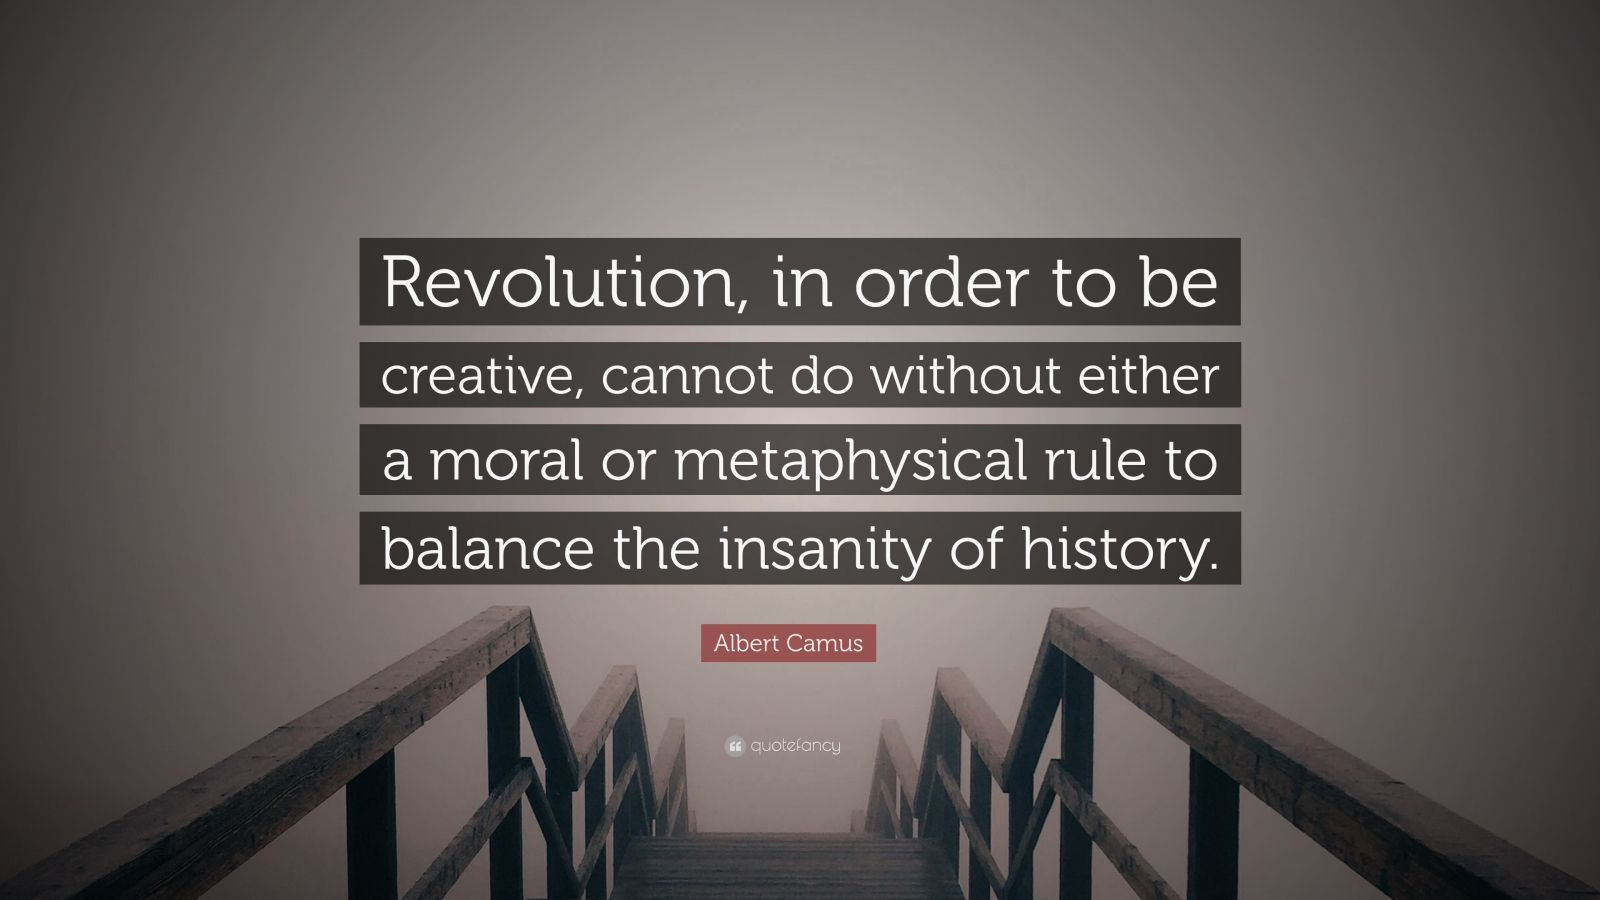 """Albert Camus Quote: """"Revolution, in order to be creative, cannot do without either a moral or metaphysical rule to balance the insanity of history."""""""